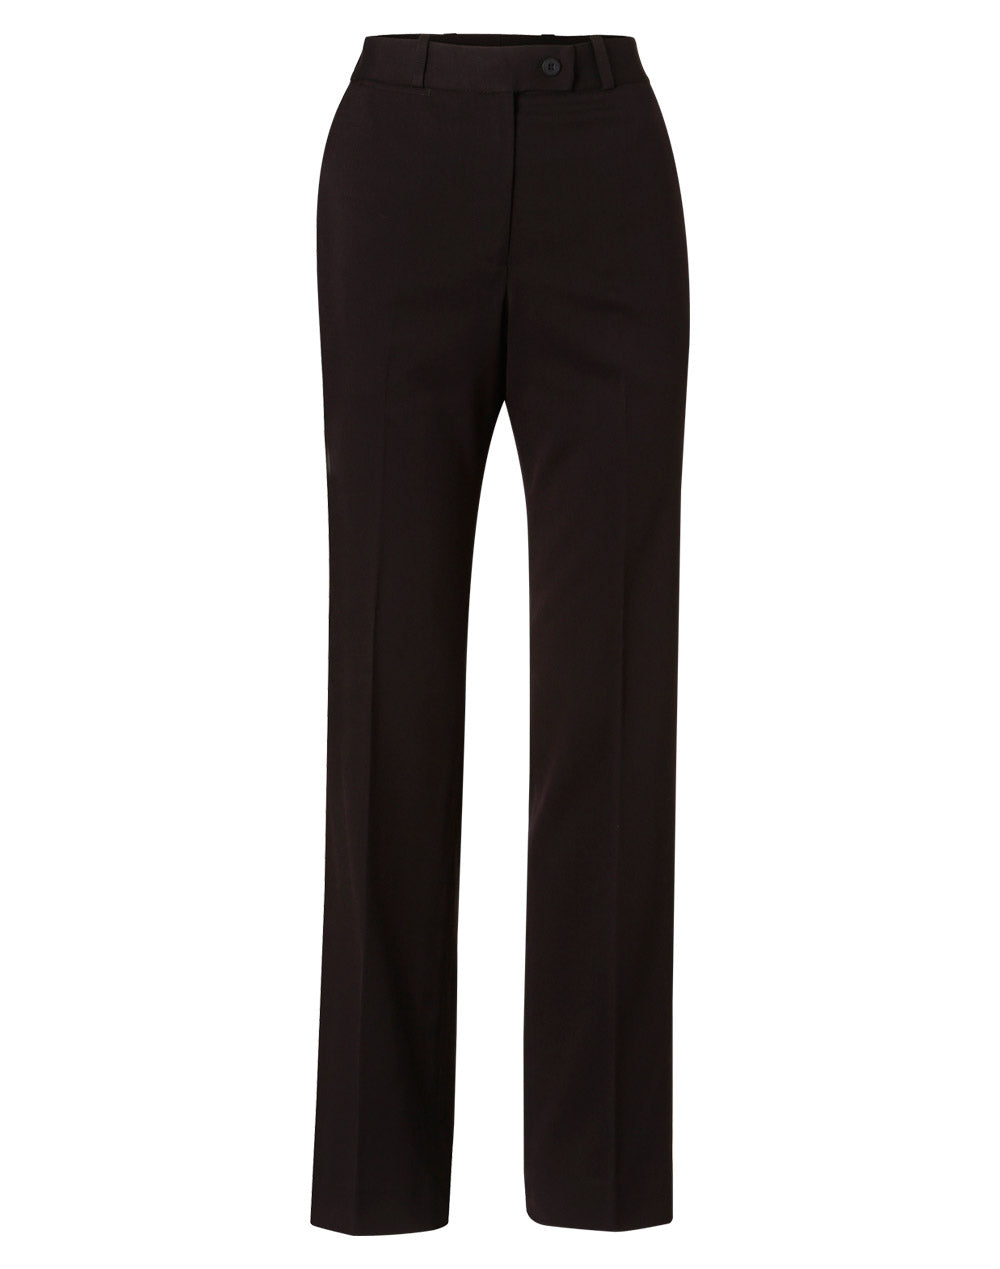 Winning Spirit Women's Poly/Viscose Stretch Flexi Waist Utility Pants (M9440)